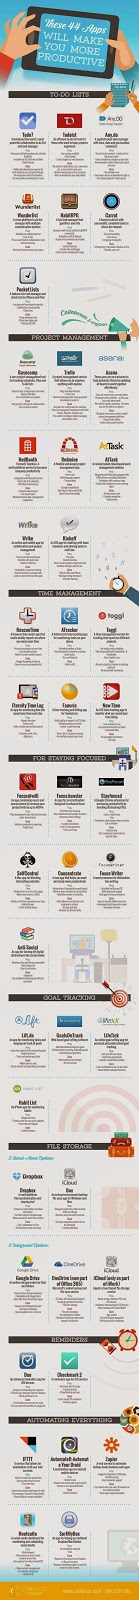 Productivity Apps - infographic